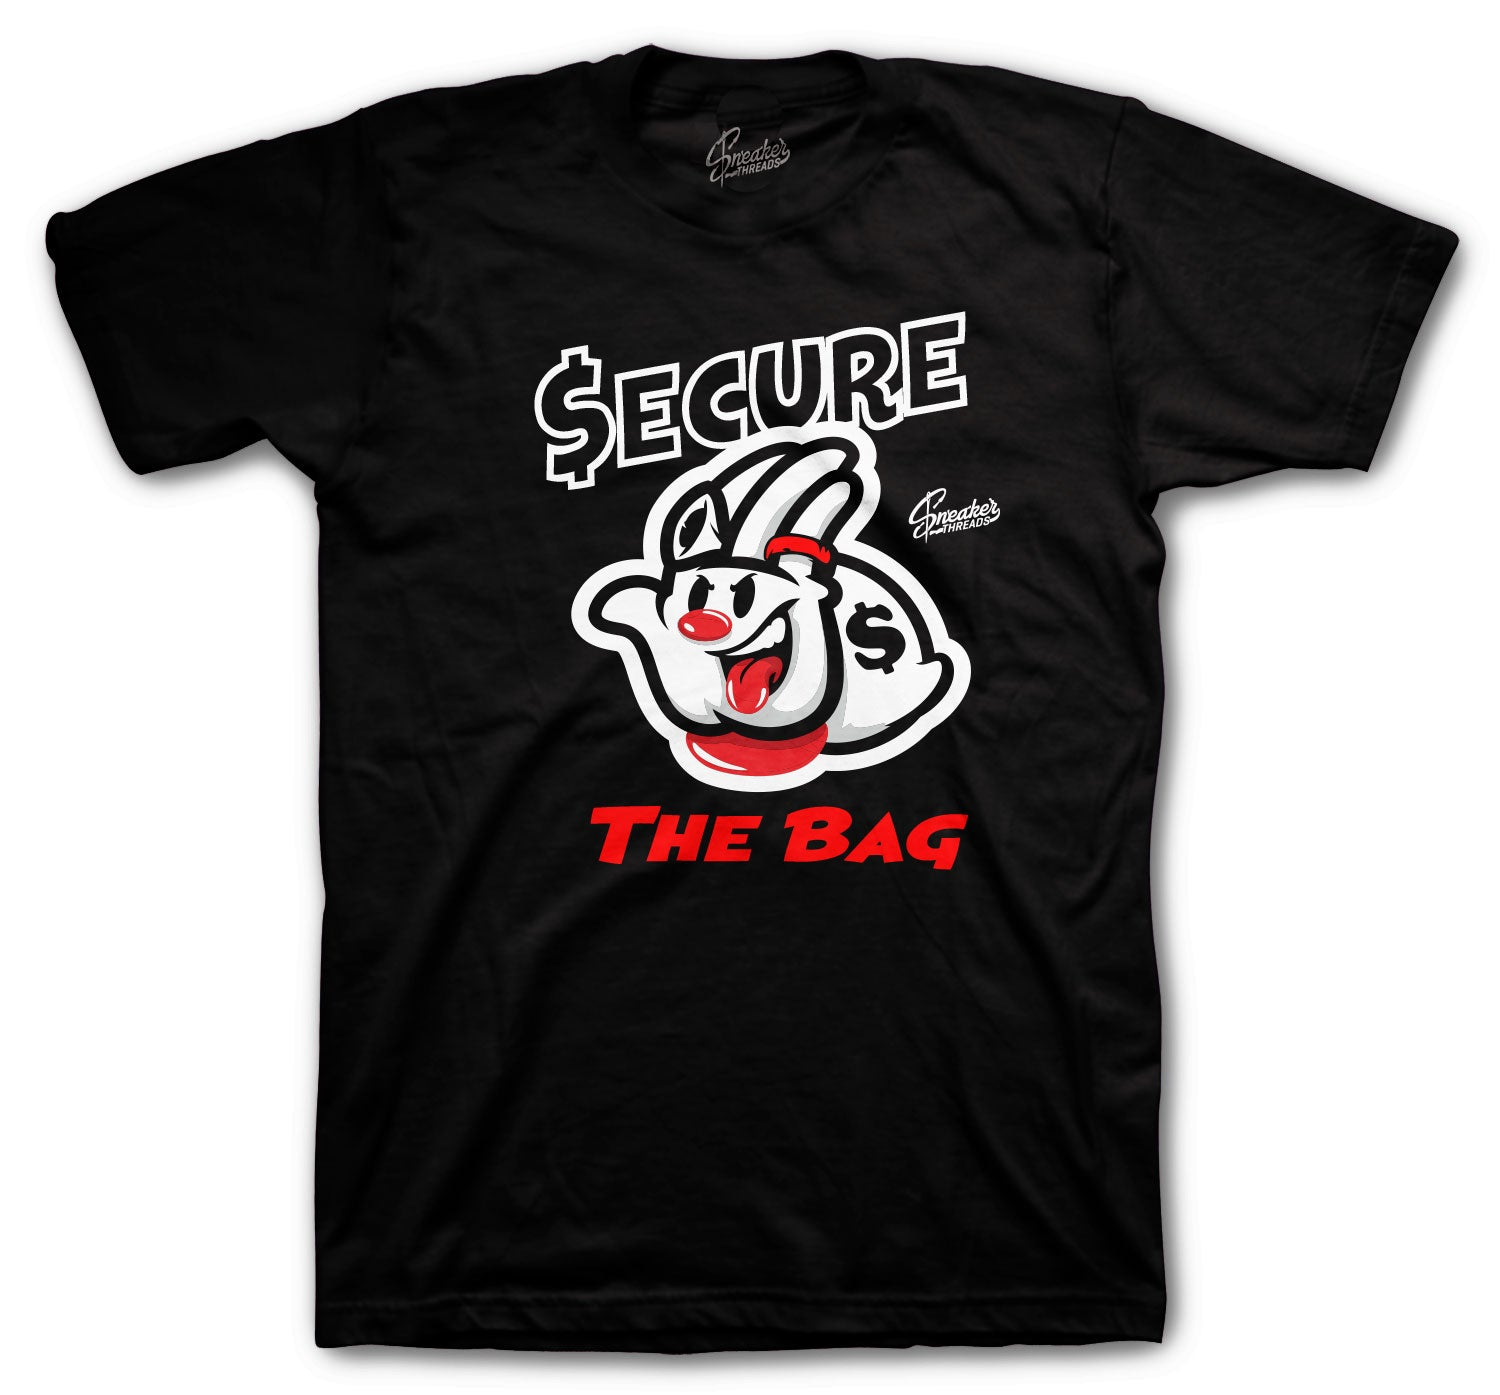 Jordan 11 Bred Secure The Bag Shirt